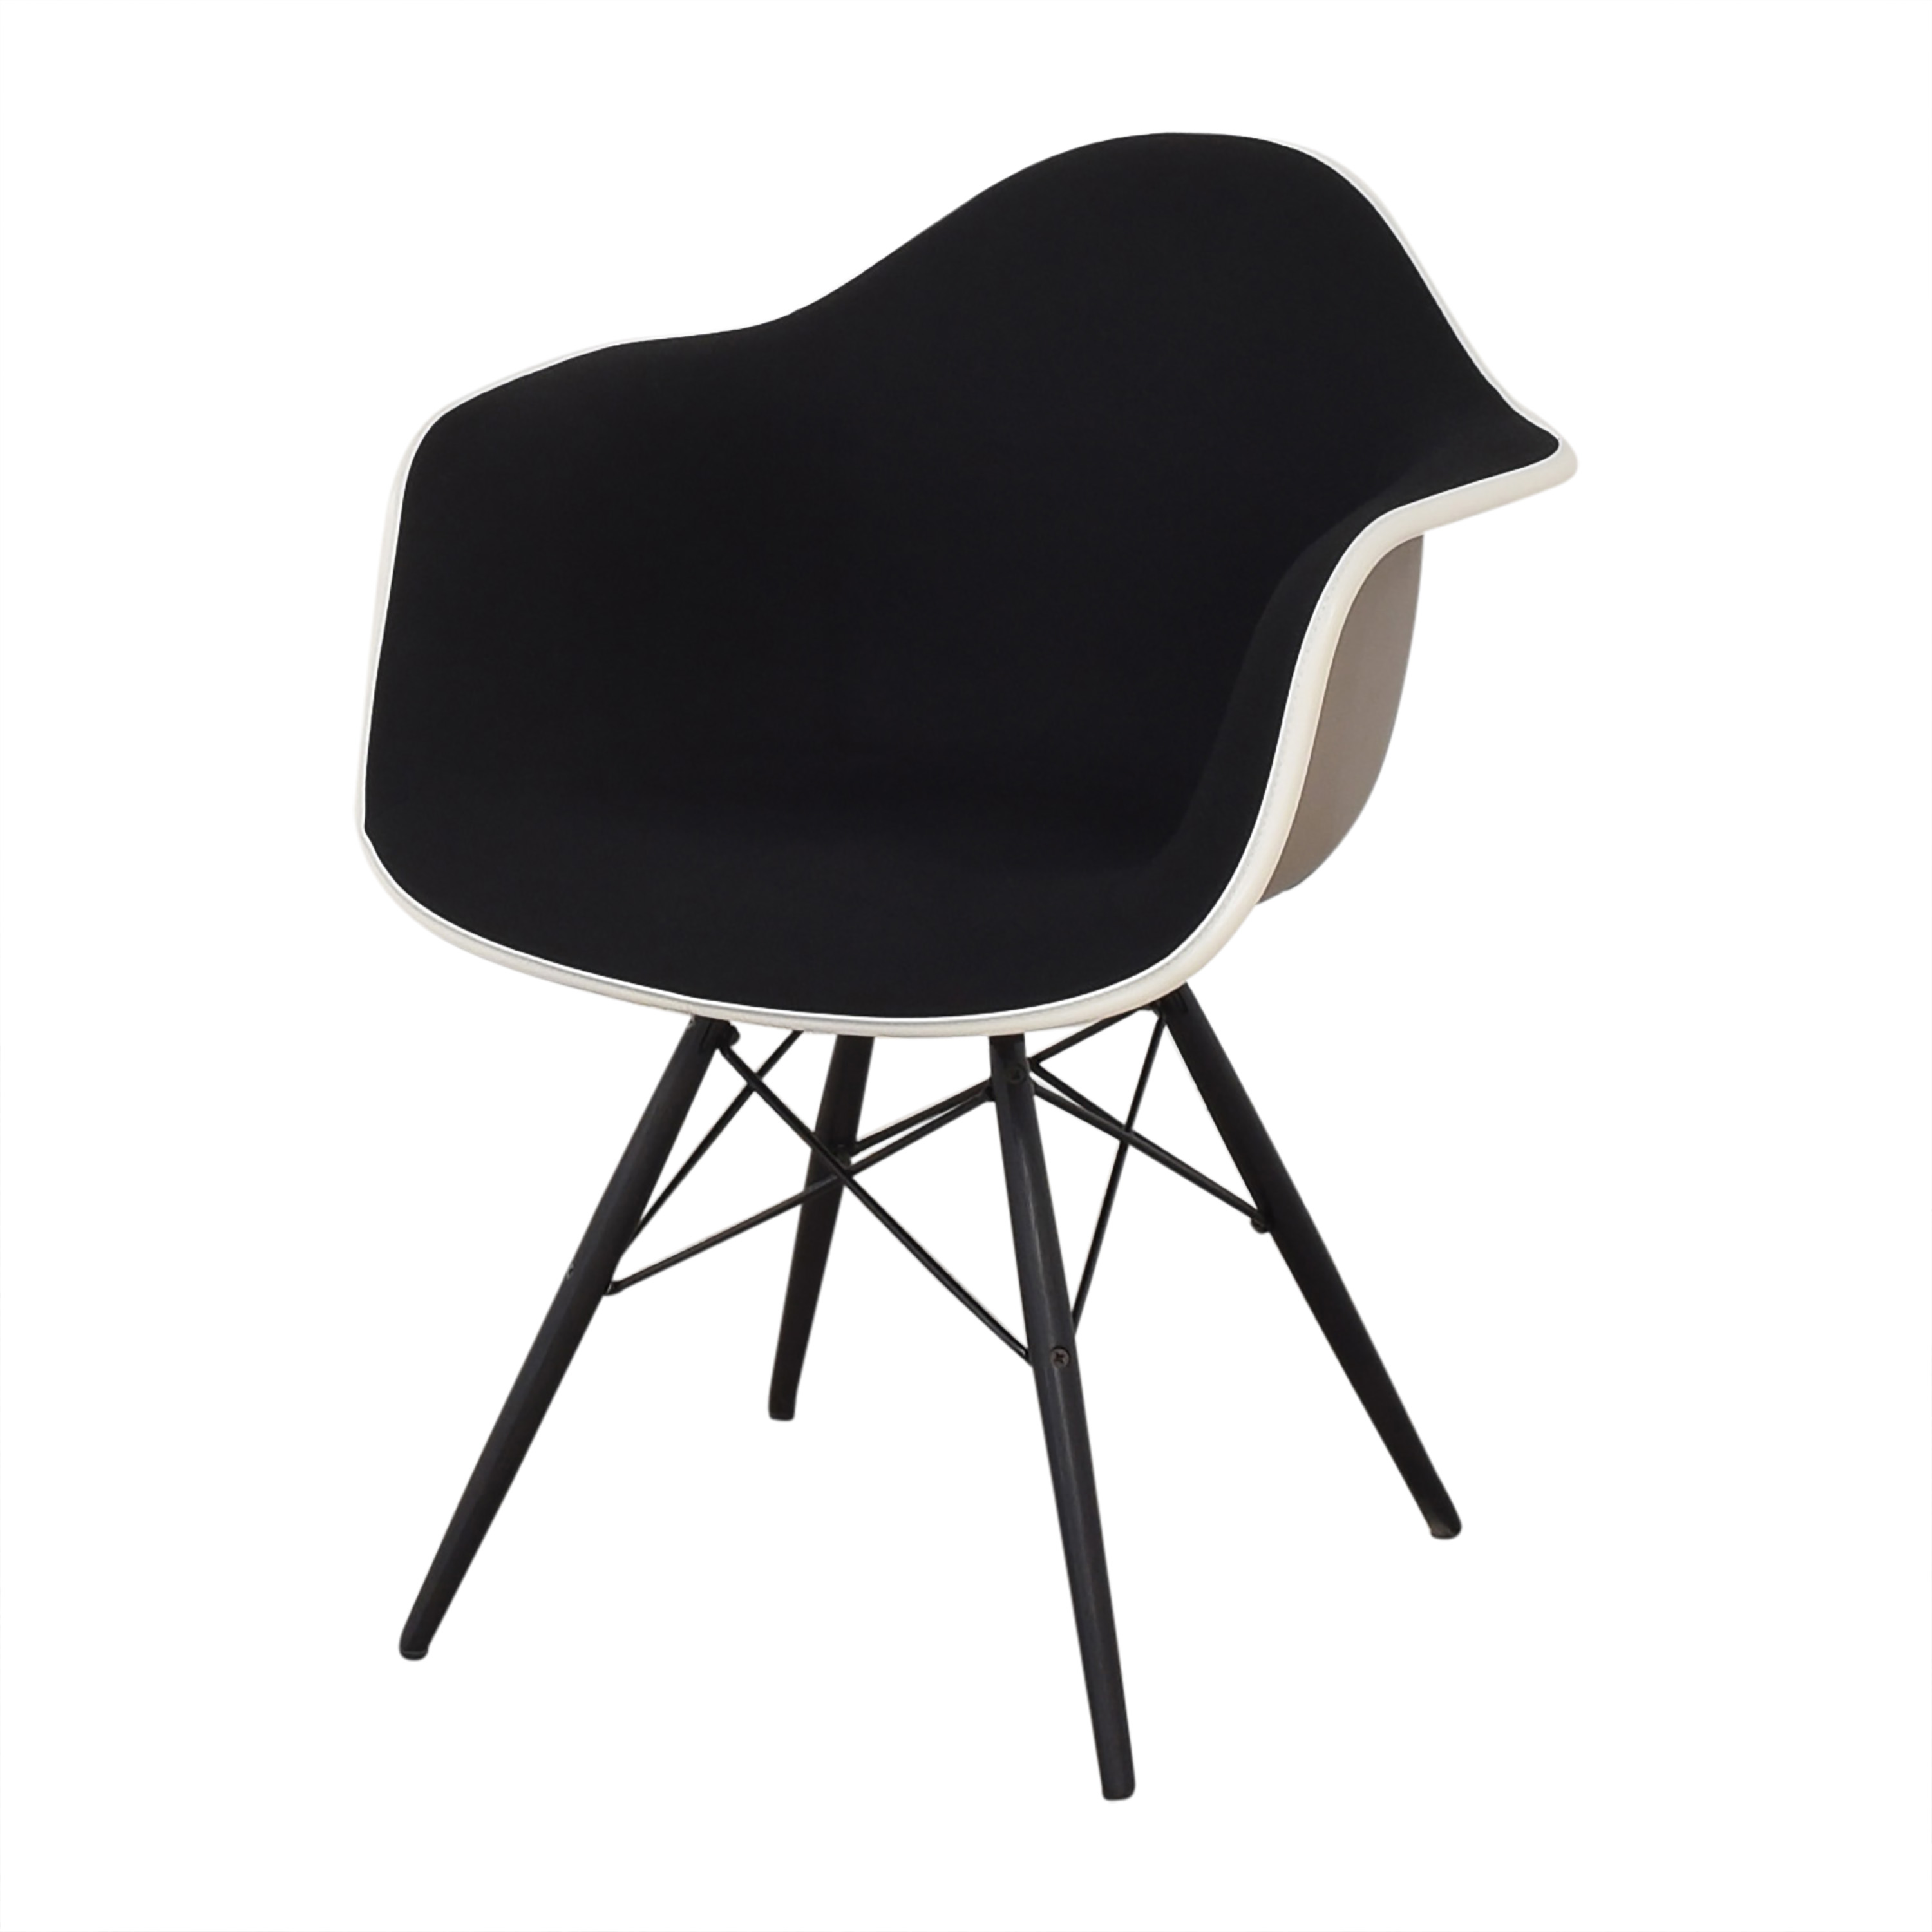 Herman Miller Herman Miller Eames Molded Arm Chairs on sale